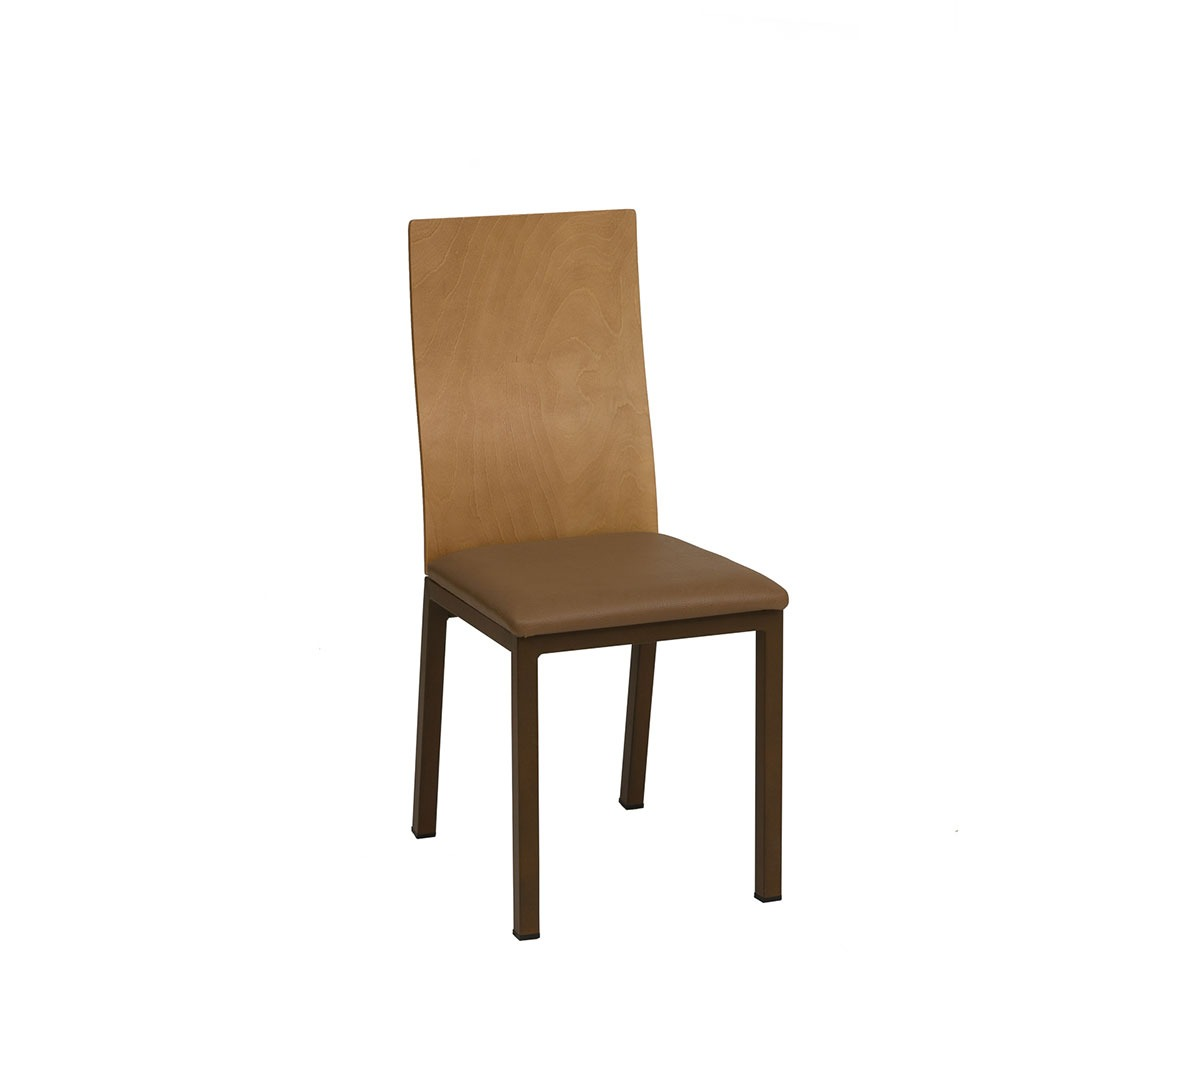 Silla Boston estructura acero color óxido marrón respaldo barnizado natural asiento tapizado textil marrón chocolate